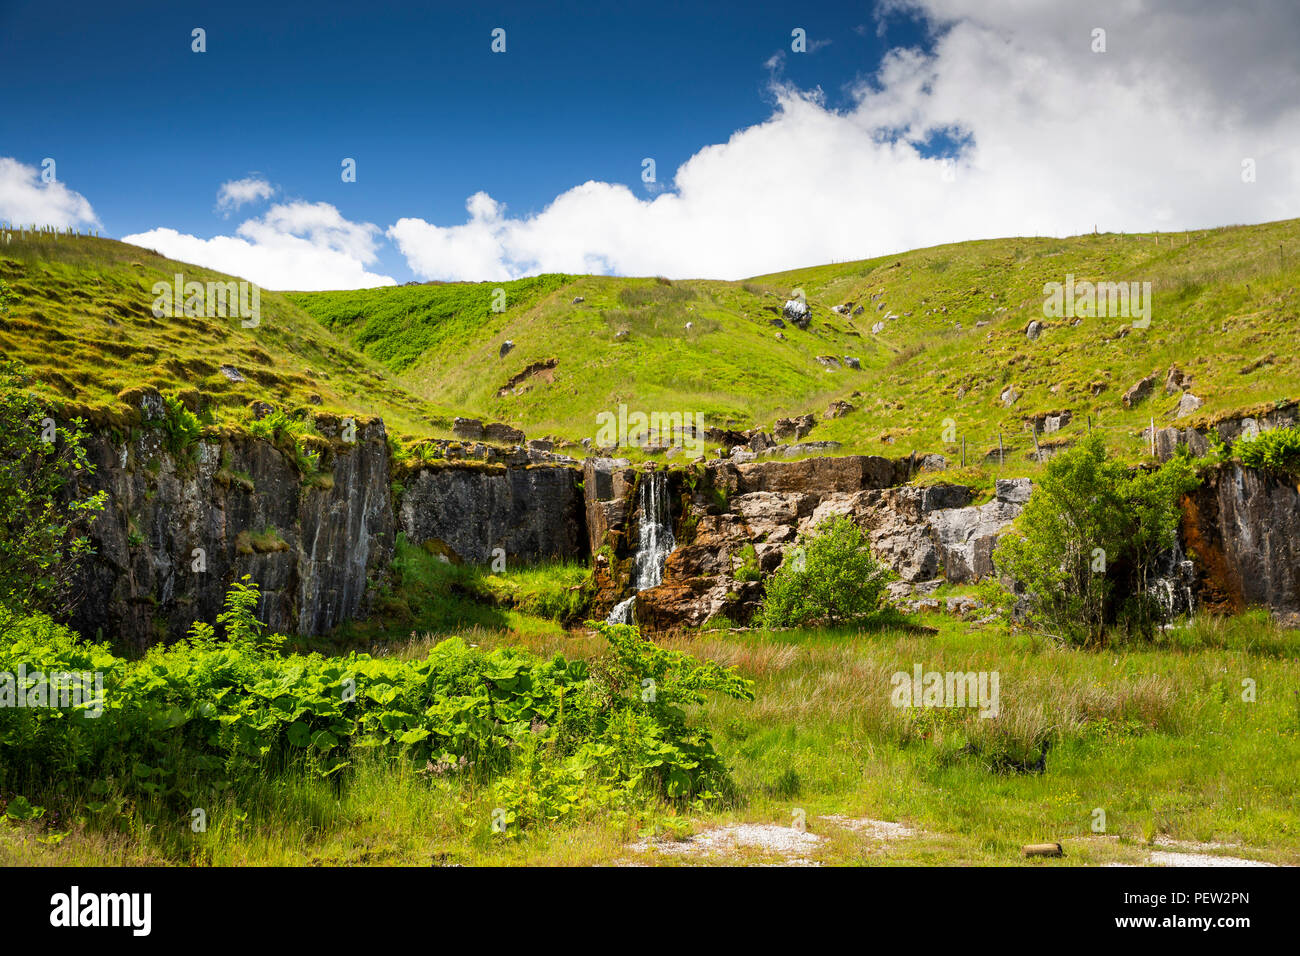 UK, Cumbria, Eden Valley, Cotegill Bridge, Near Cote Gill waterfall down old quarry workings - Stock Image